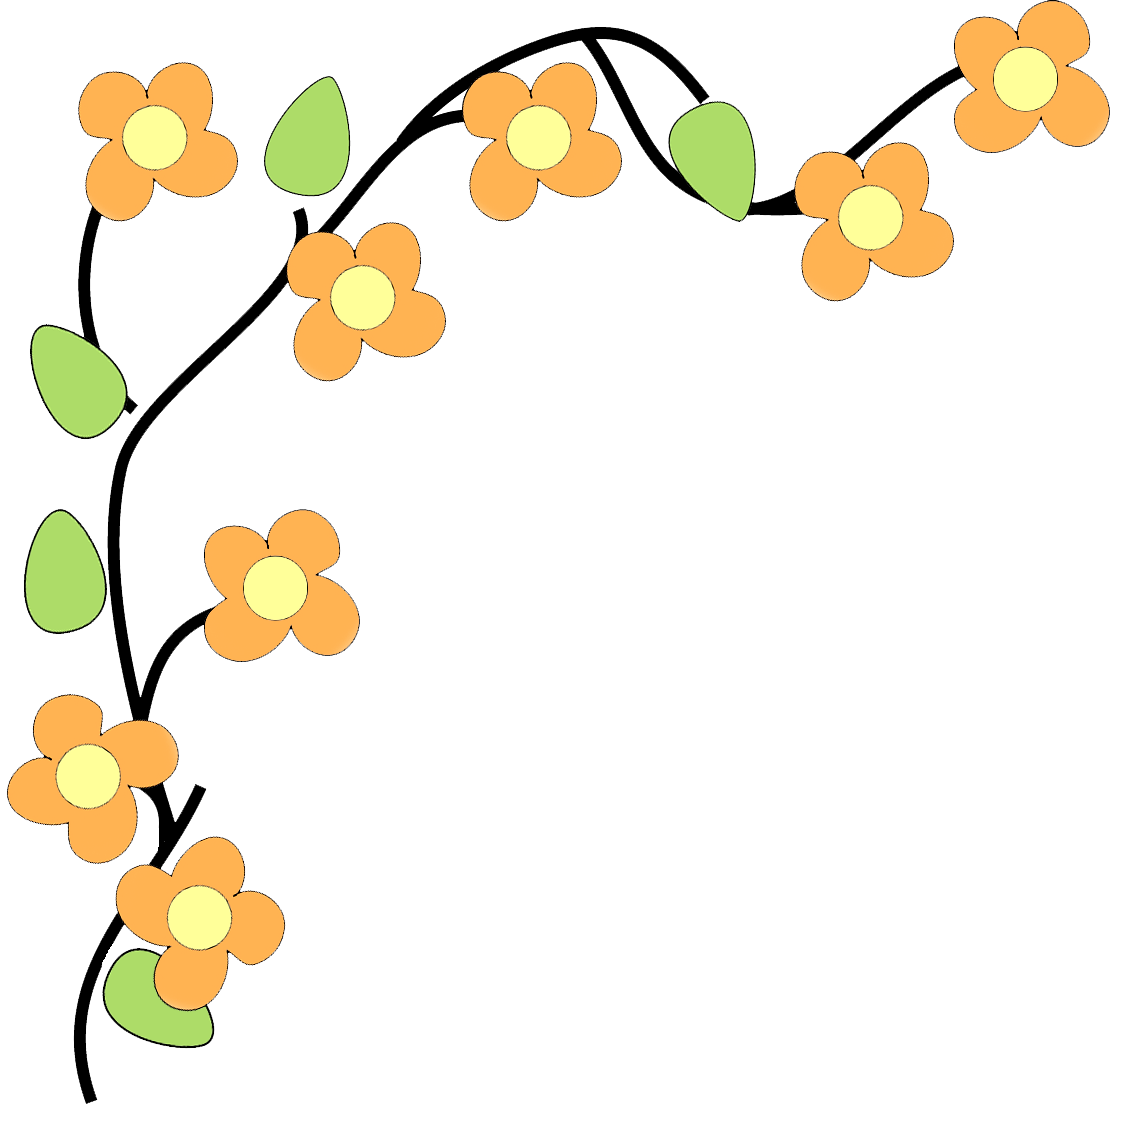 Flower Clipart To Color Free Download Best Flower Clipart To Color